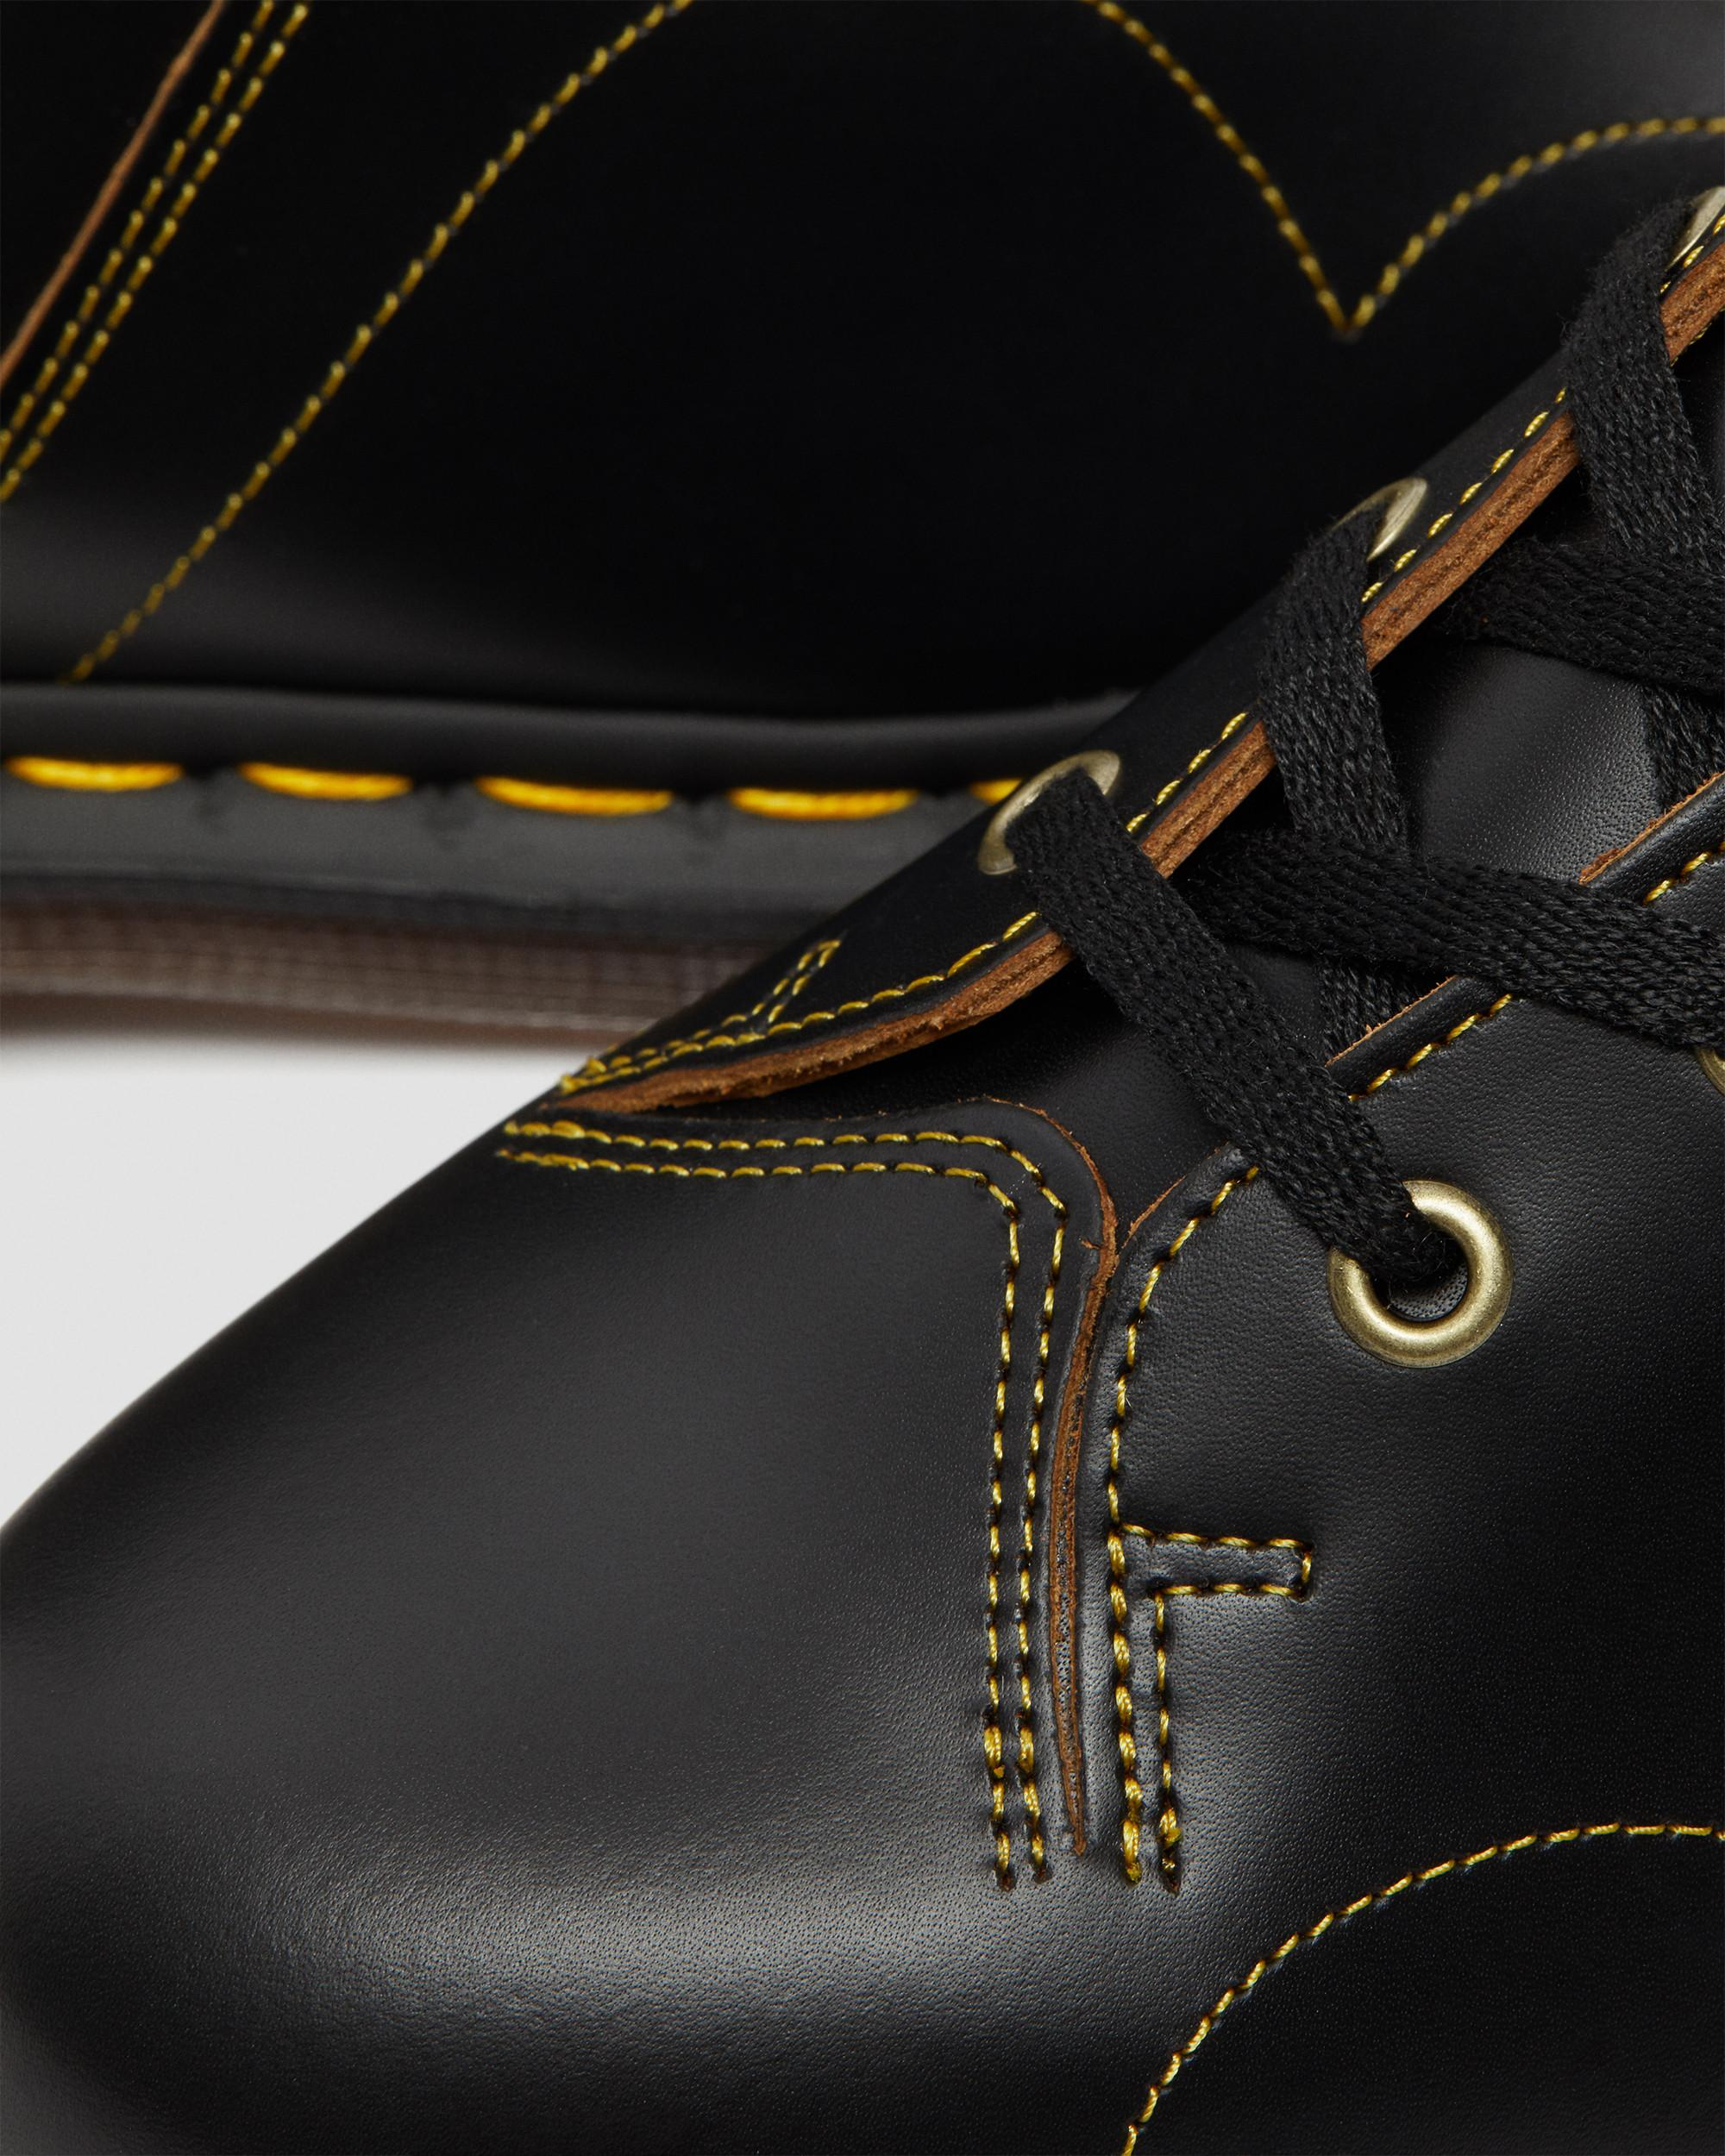 chaussure ressemblant aux church vintage smooth dr martens